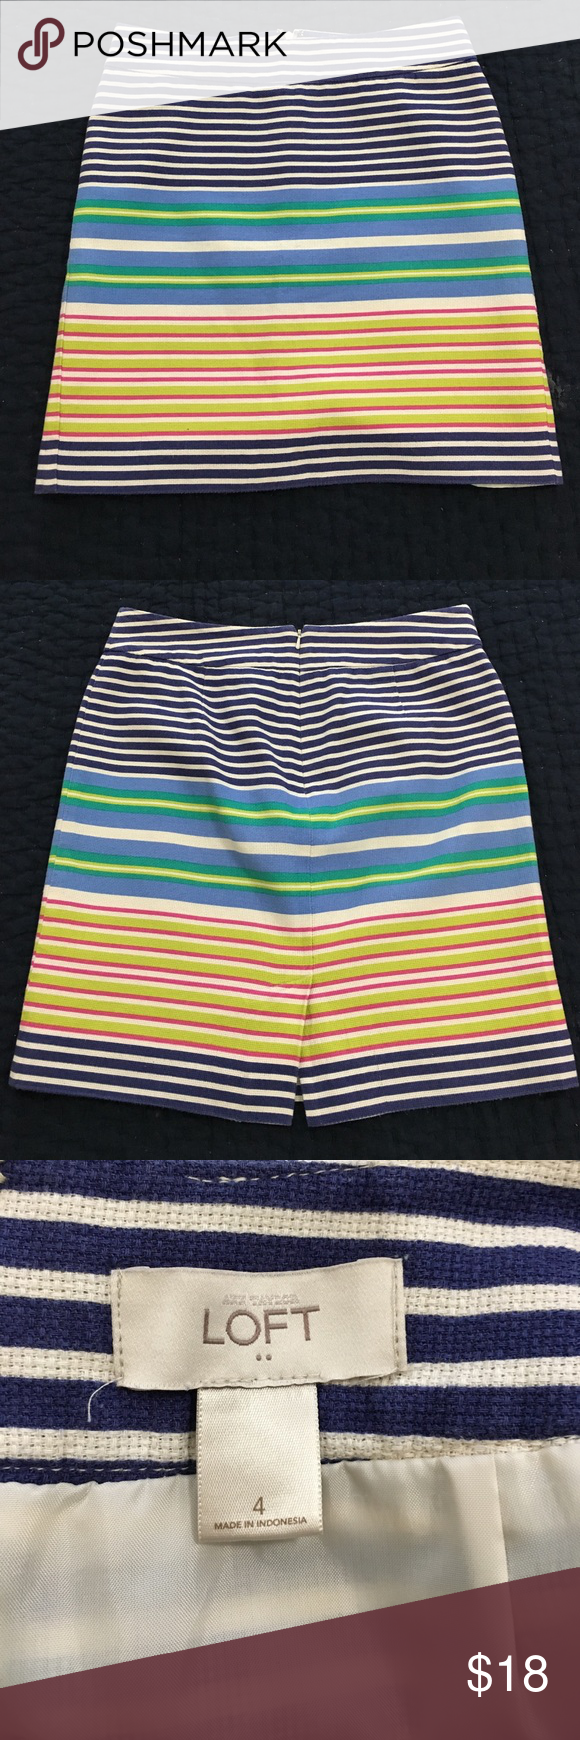 Ann Taylor Loft Striped Skirt sz 4 Very good condition! Size 4. 100% cotton shell and 100% polyester lining. Machine wash. Ann Taylor Skirts Midi